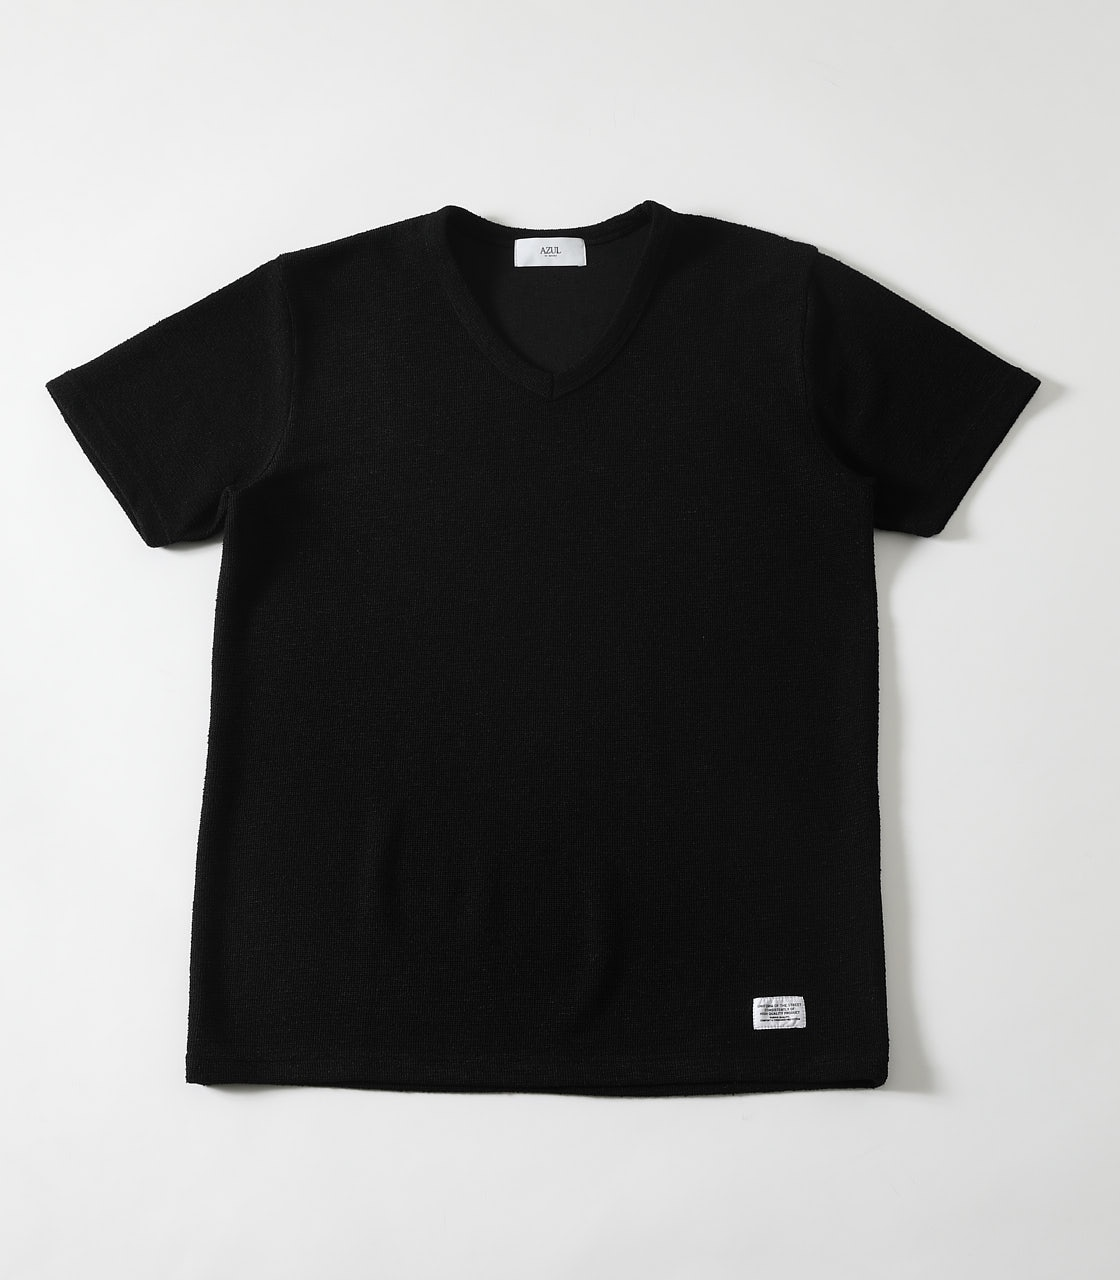 【AZUL BY MOUSSY】SLAB PILE Vネック T-SHIRTS 詳細画像 BLK 1